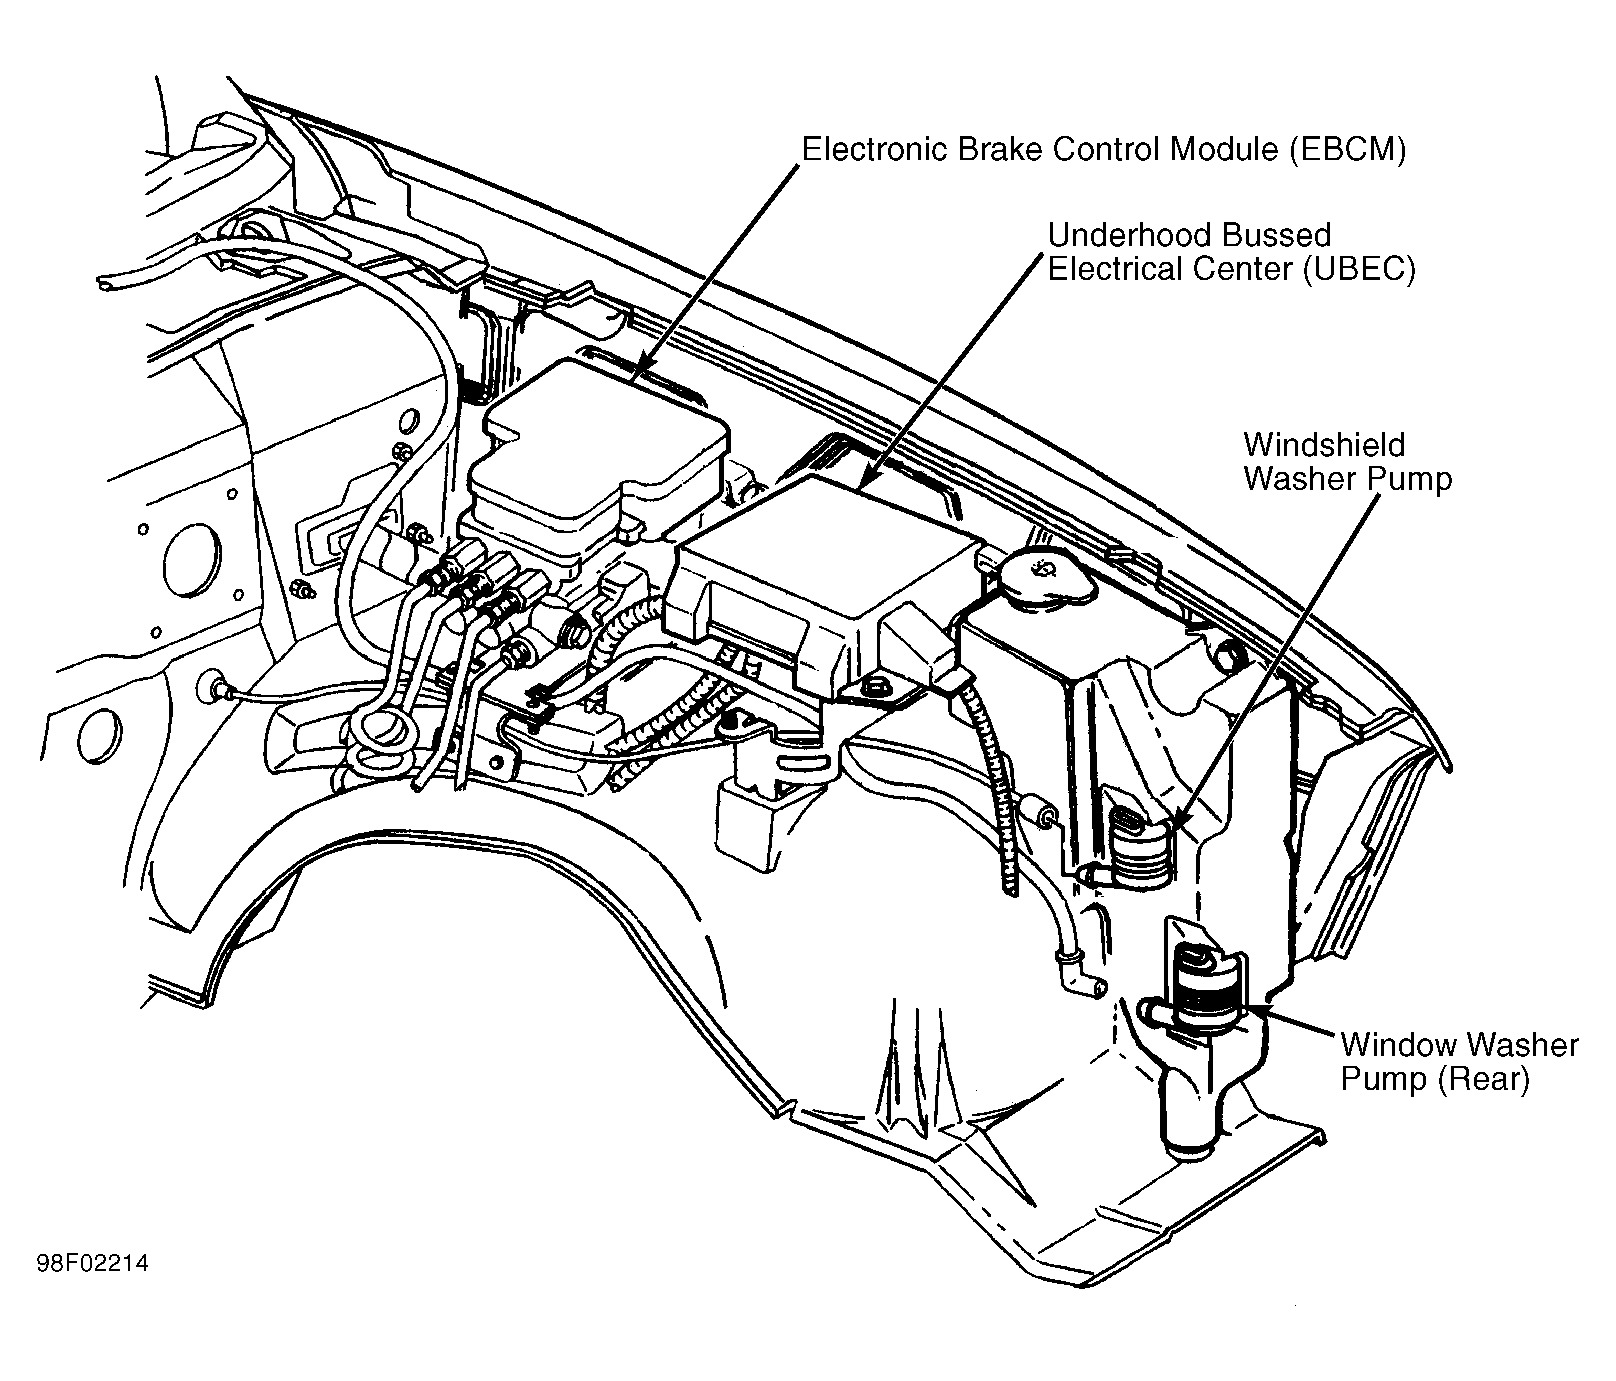 1998 Gmc Sonoma Fuse Box Just Wiring Data S15 Alternator Diagram Location Passenger Power Window Will Not 1989 Sierra